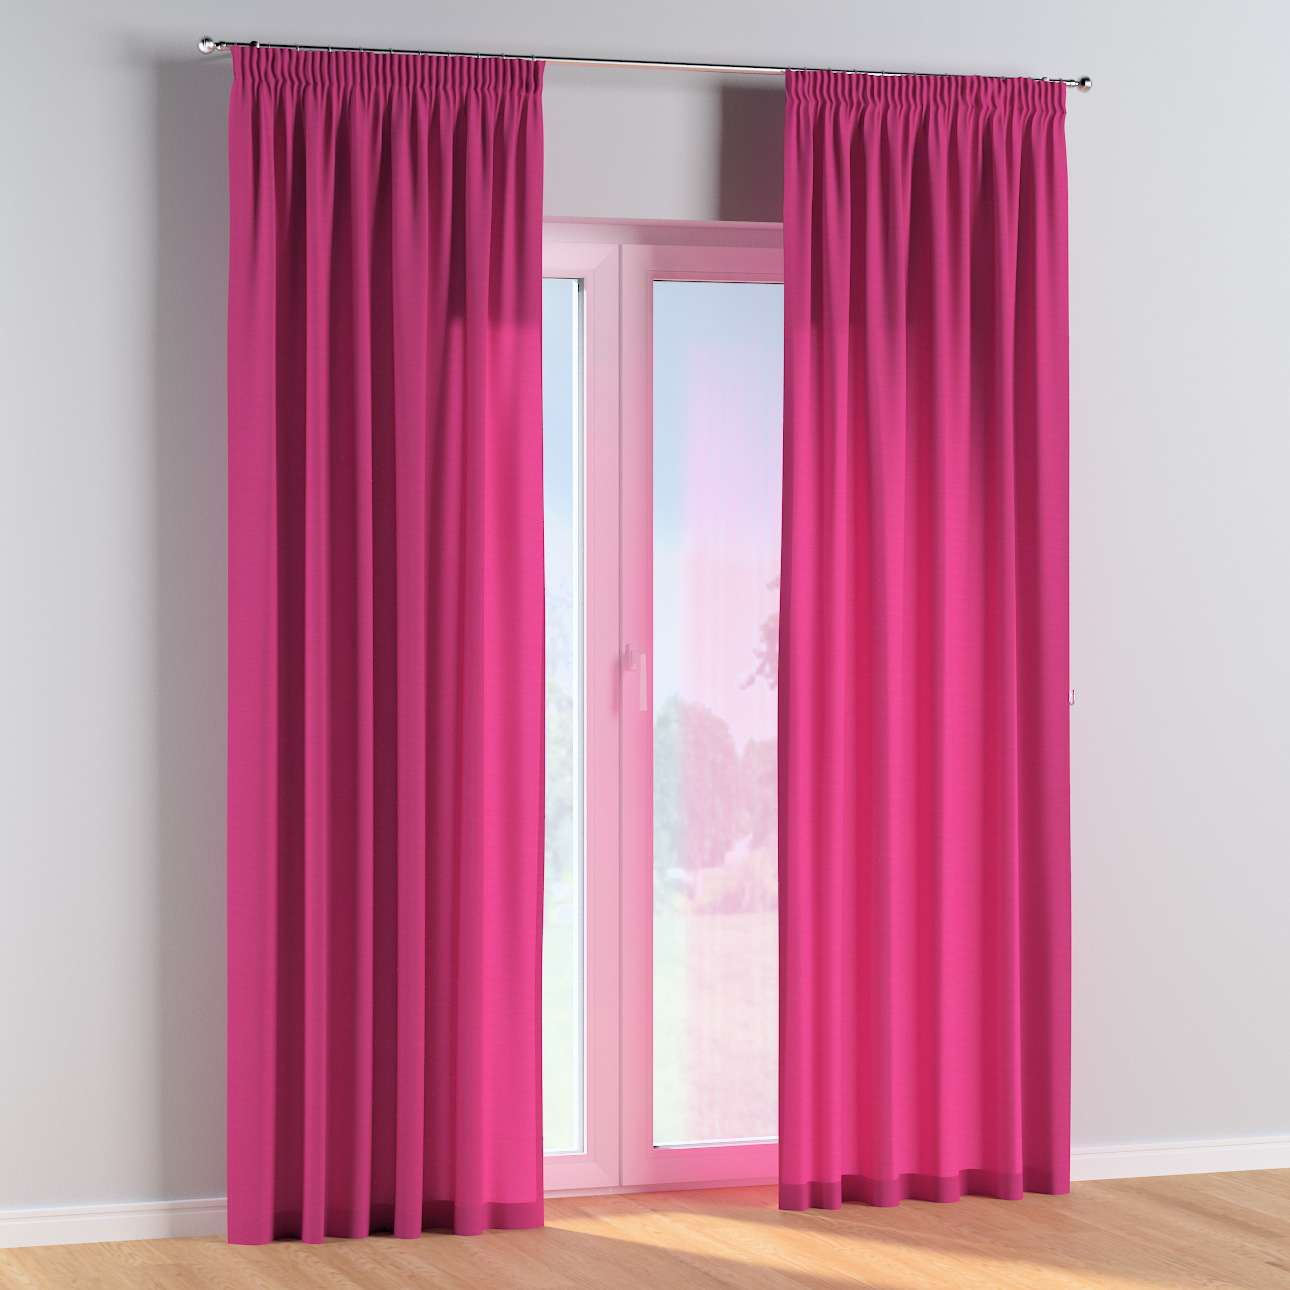 Pencil pleat curtains in collection Happiness, fabric: 133-60